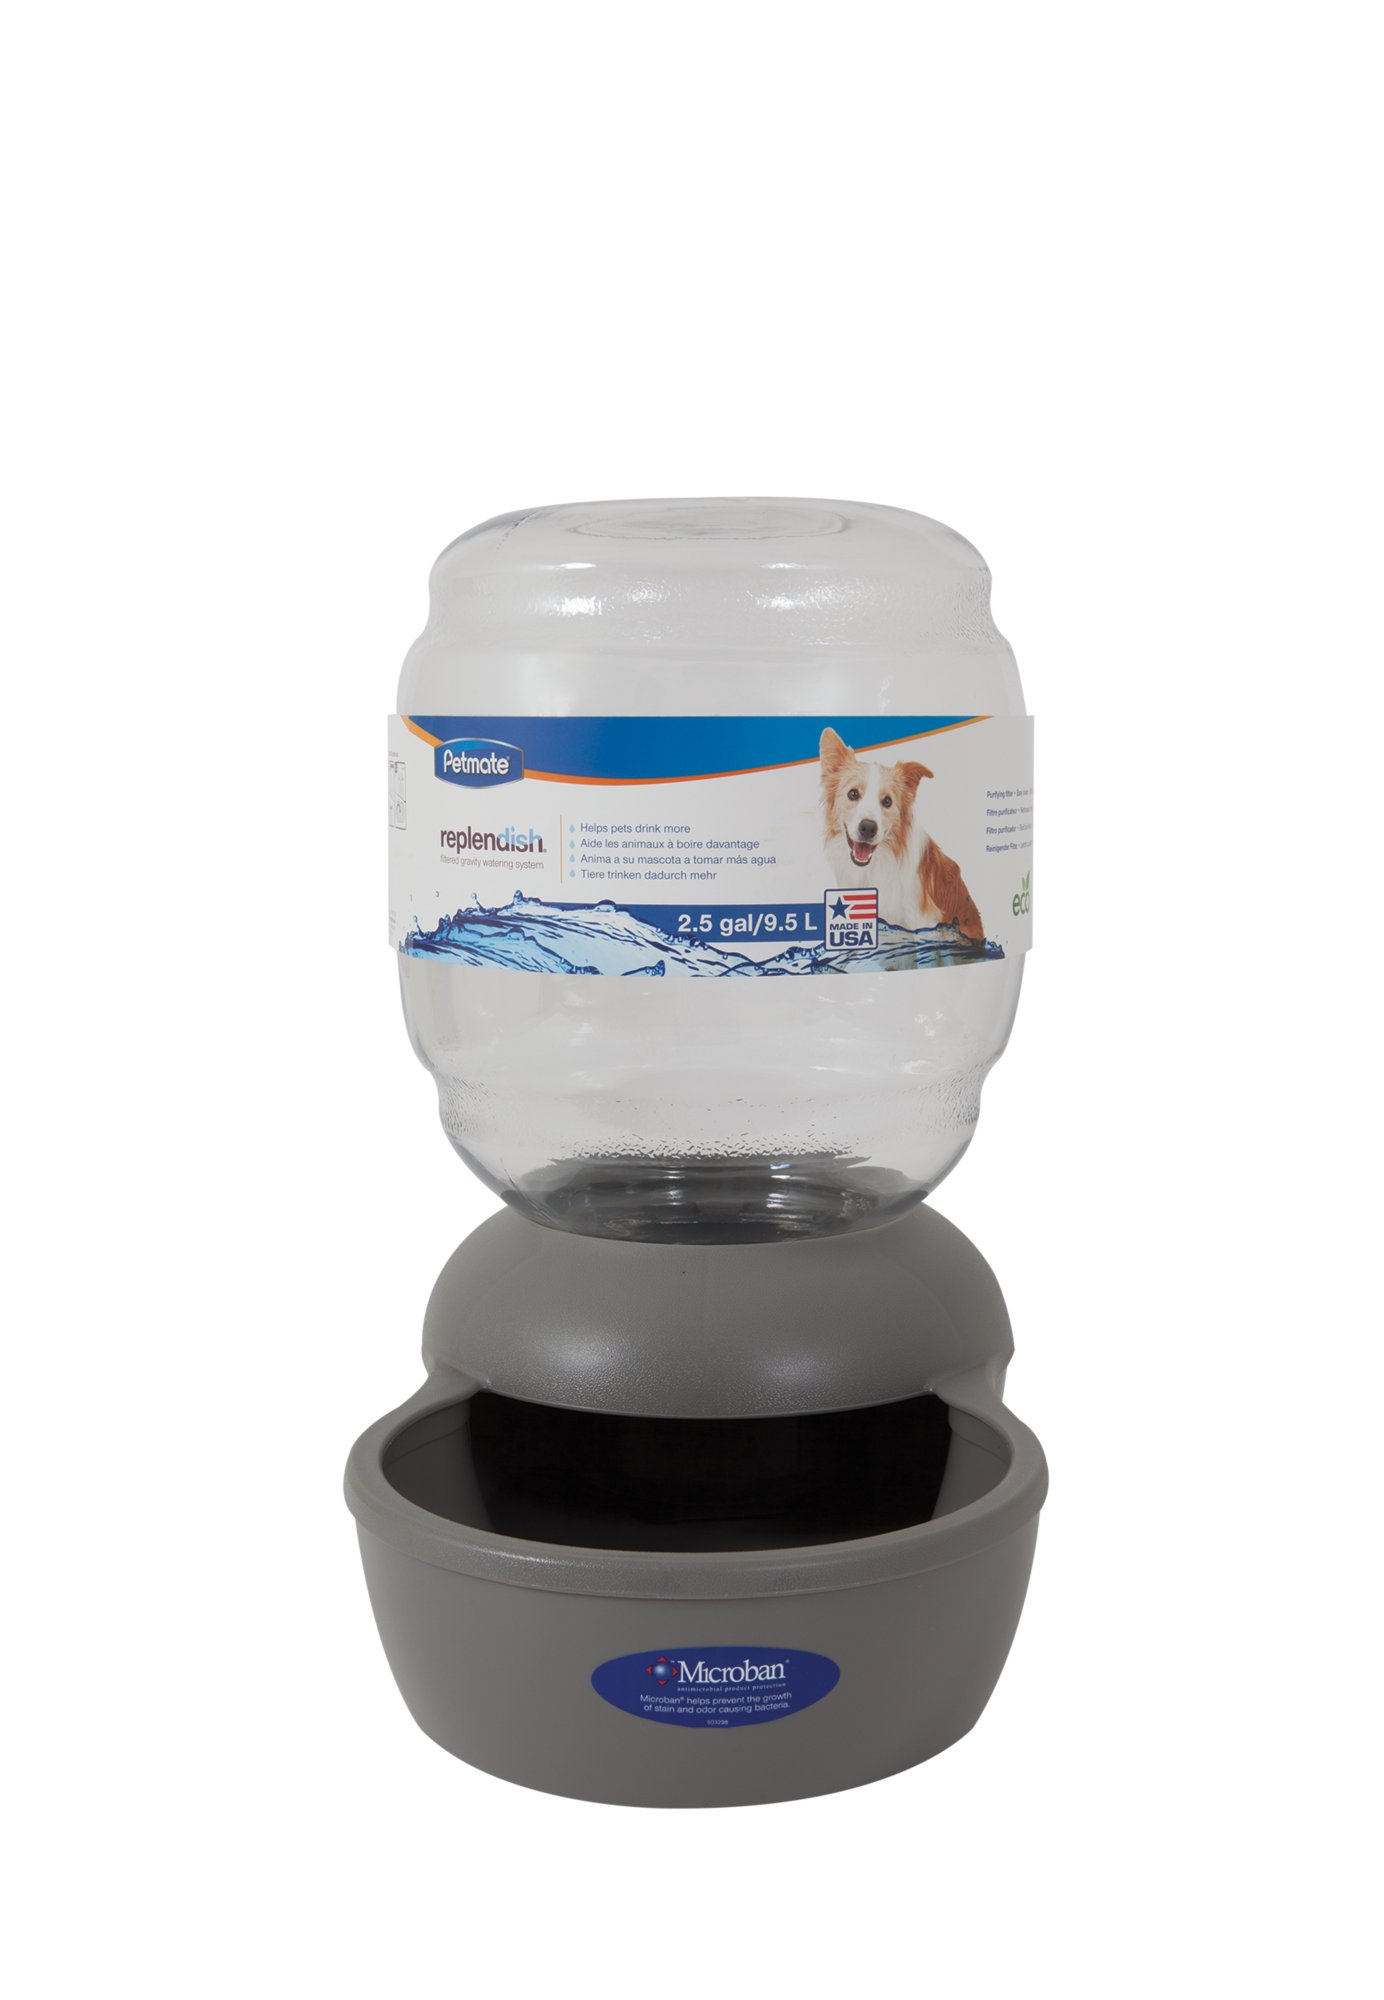 Petmate Replendish Gravity Waterer Grey Dog Bowl